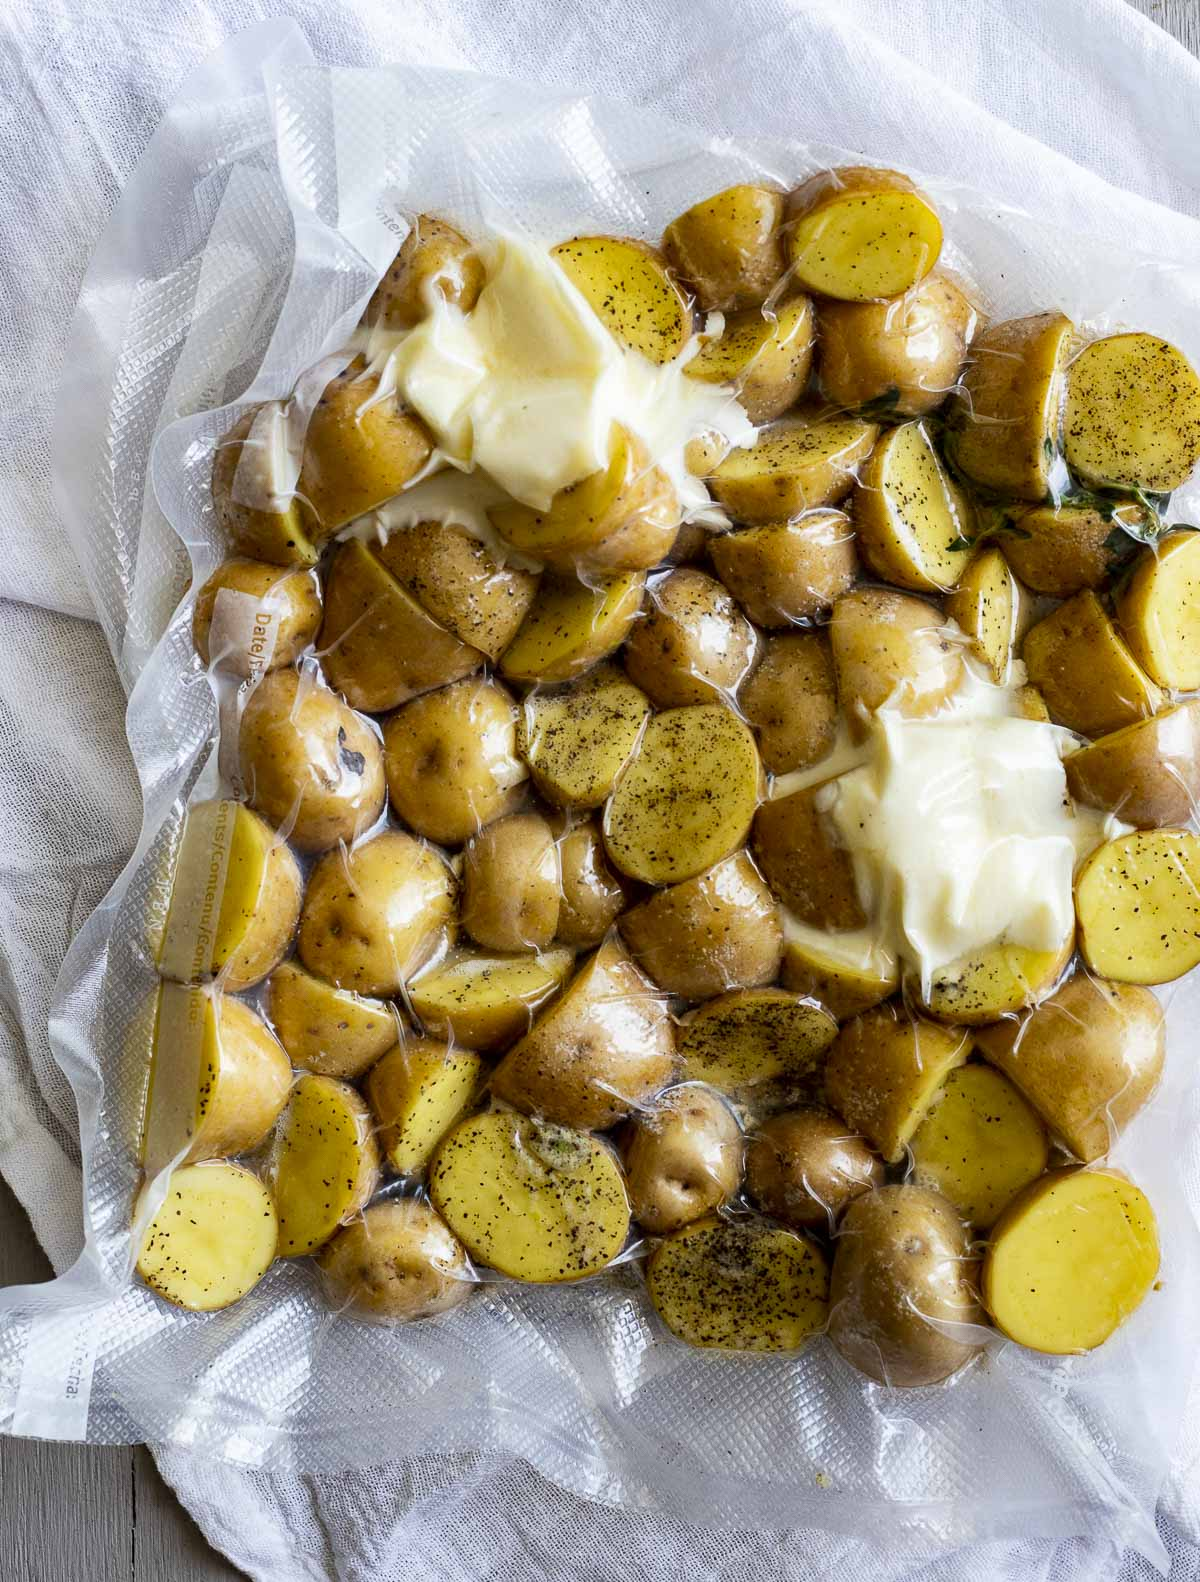 Mini potatoes vacuum sealed in a bag with seasoning and butter.